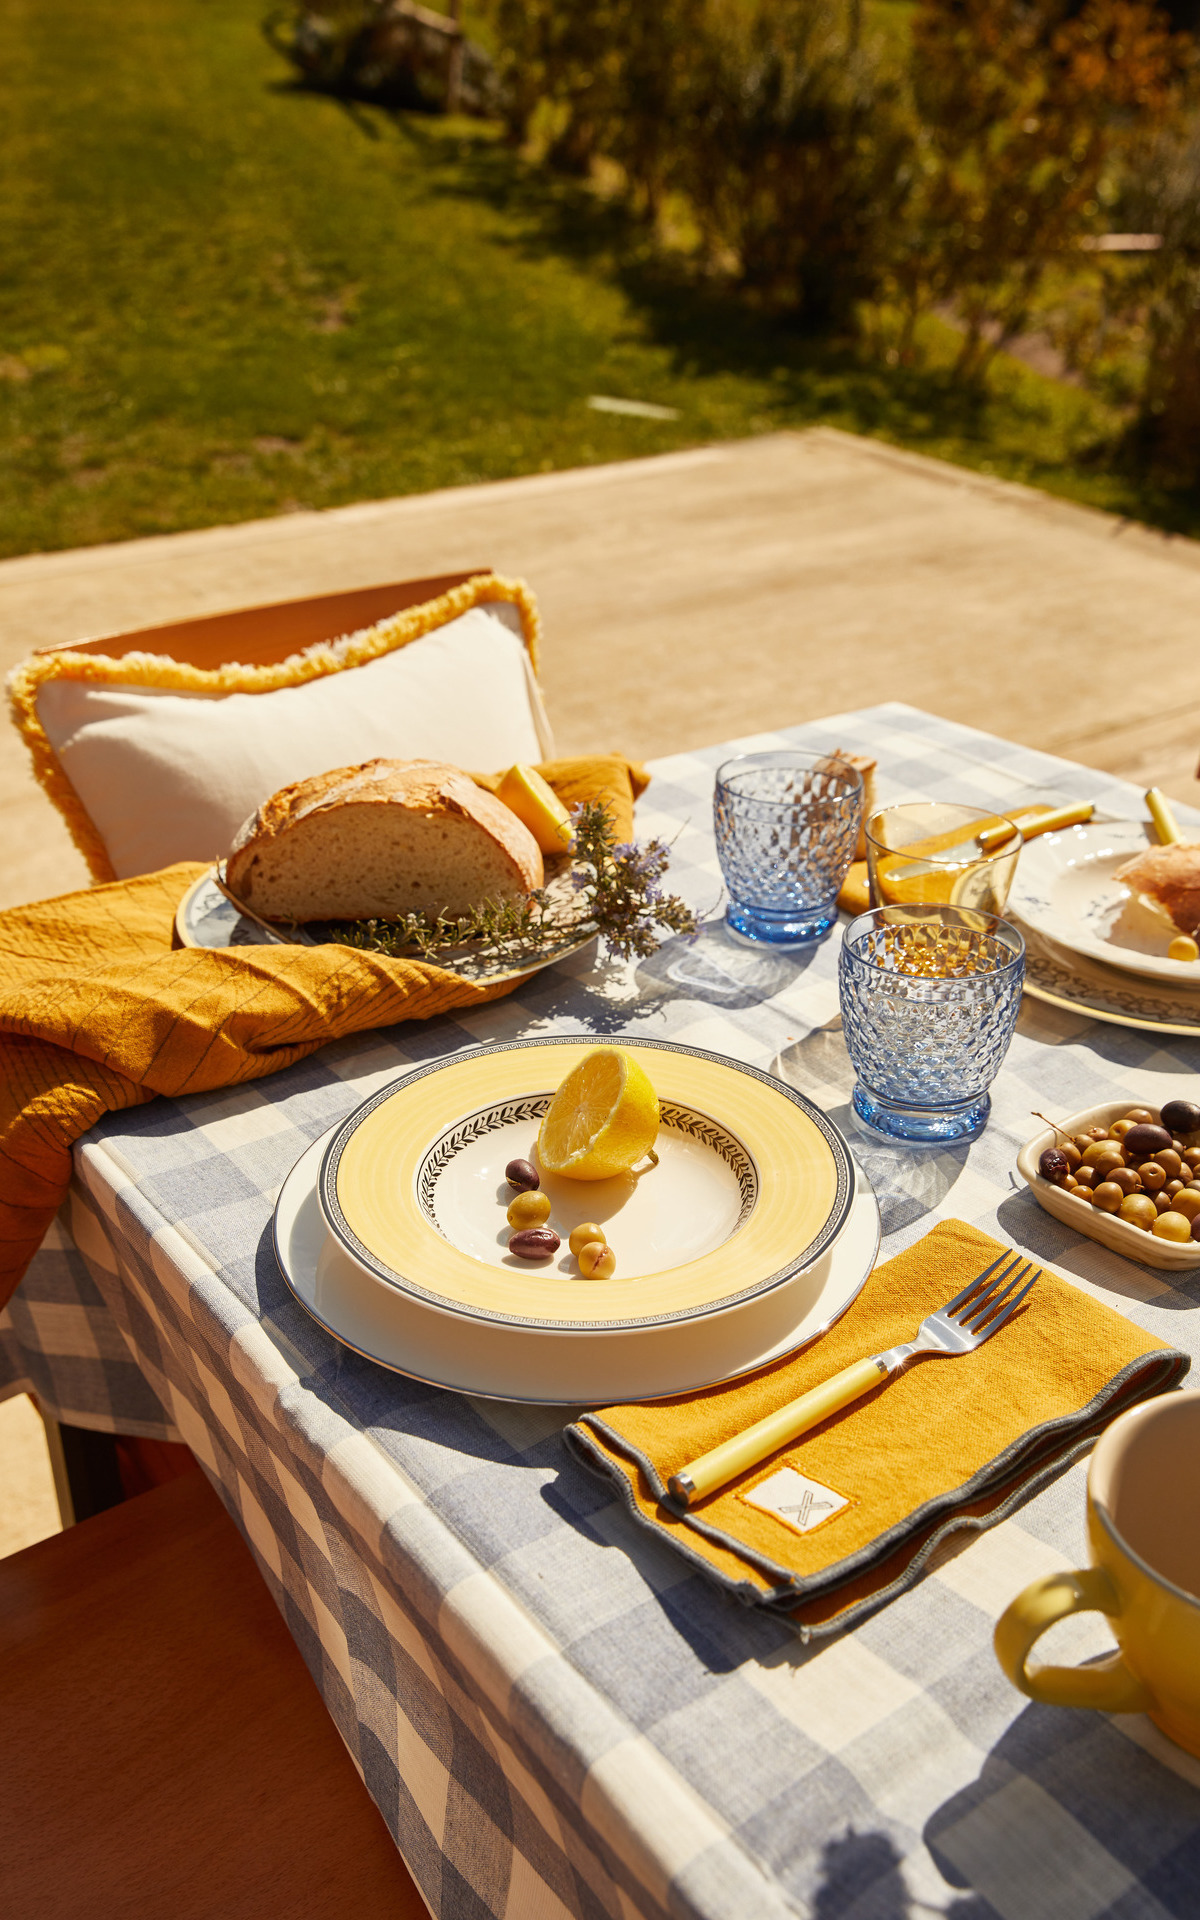 picnic yellow and blue table